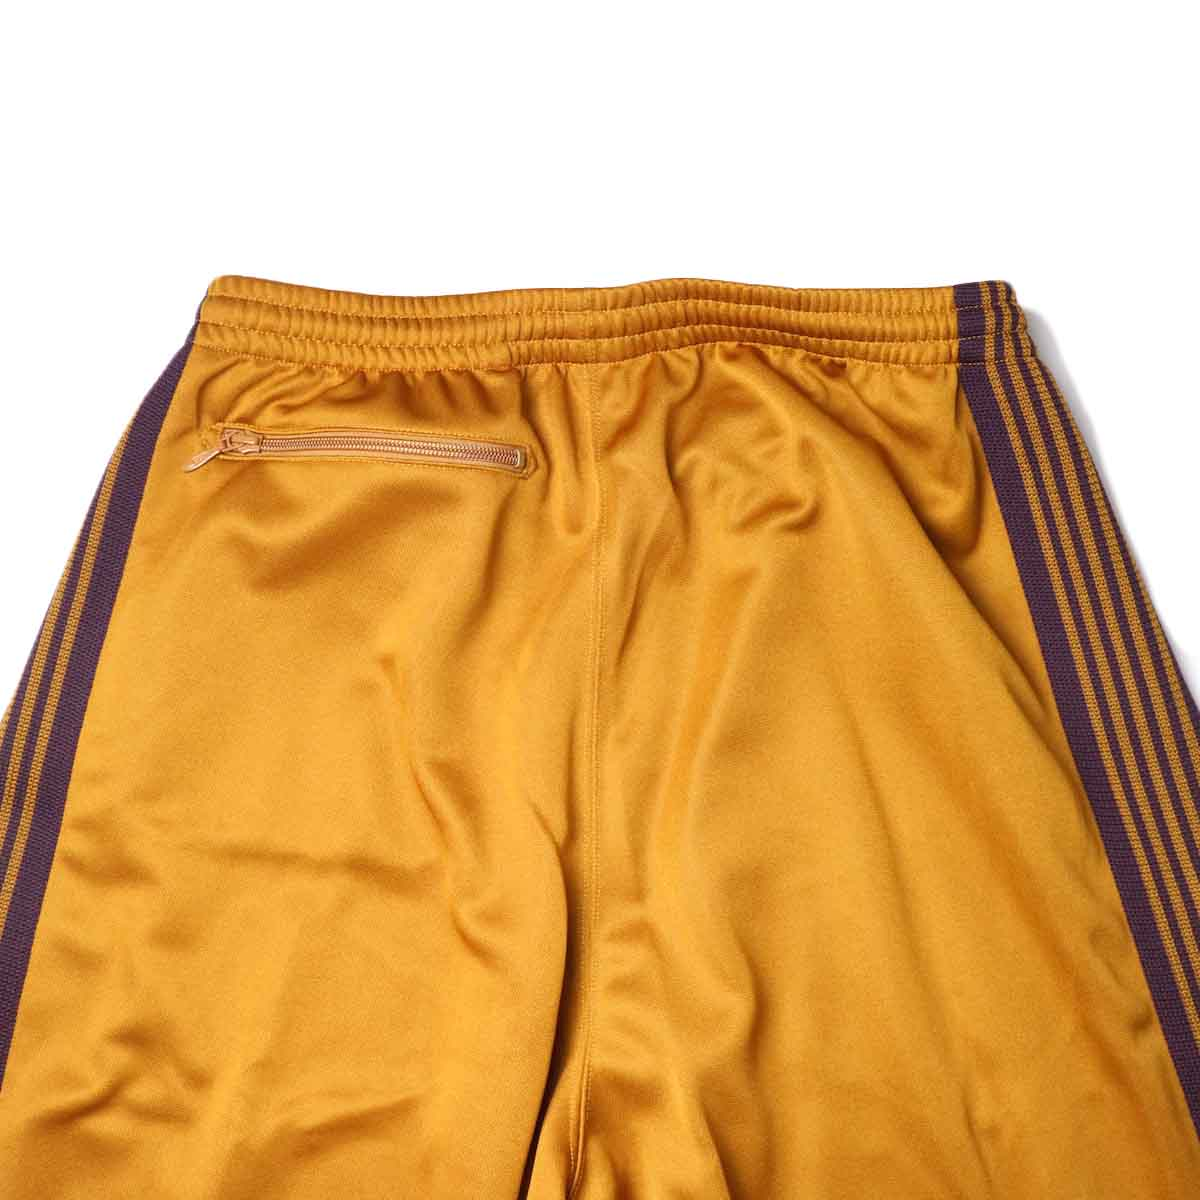 Needles / H.D. TRACK PANT - POLY SMOOTH (Mustard)ヒップポケット